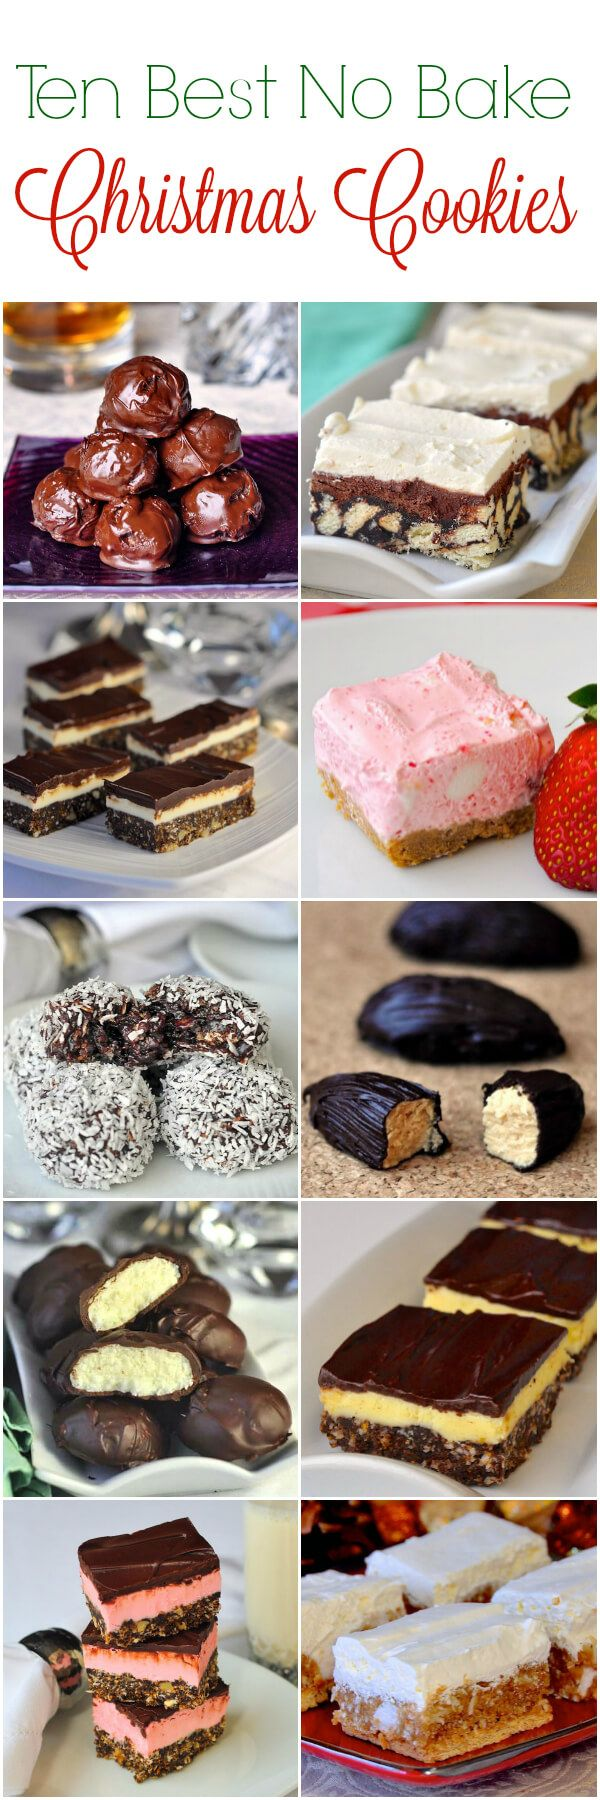 No Bake Christmas Cookies - 15 easy recipes that are freezer ...